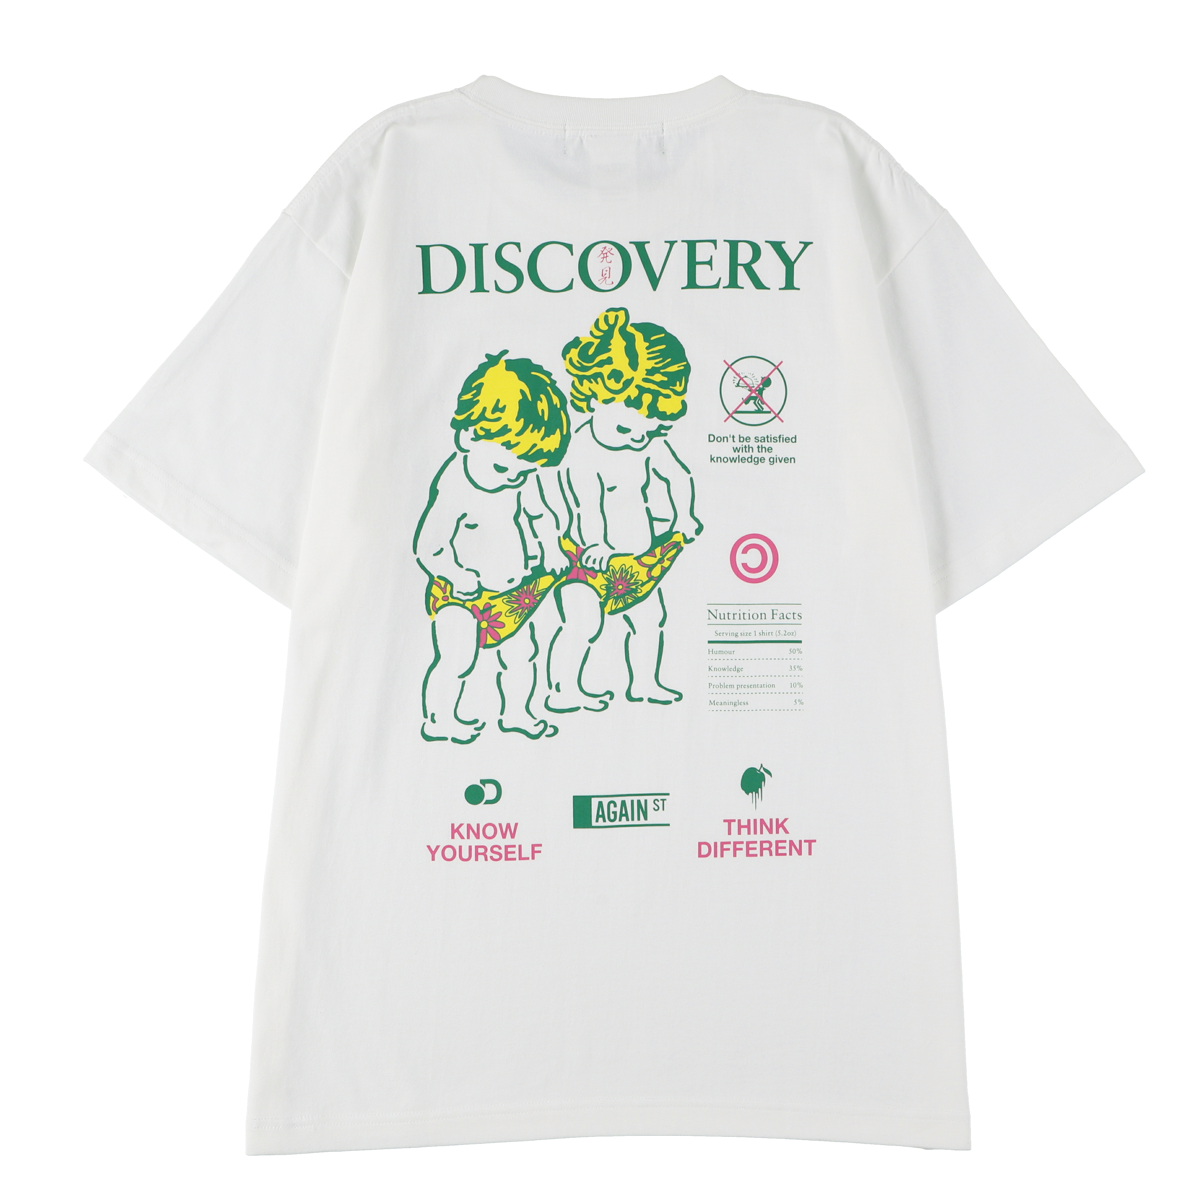 DISCOVERY tee / 2020SUMMER